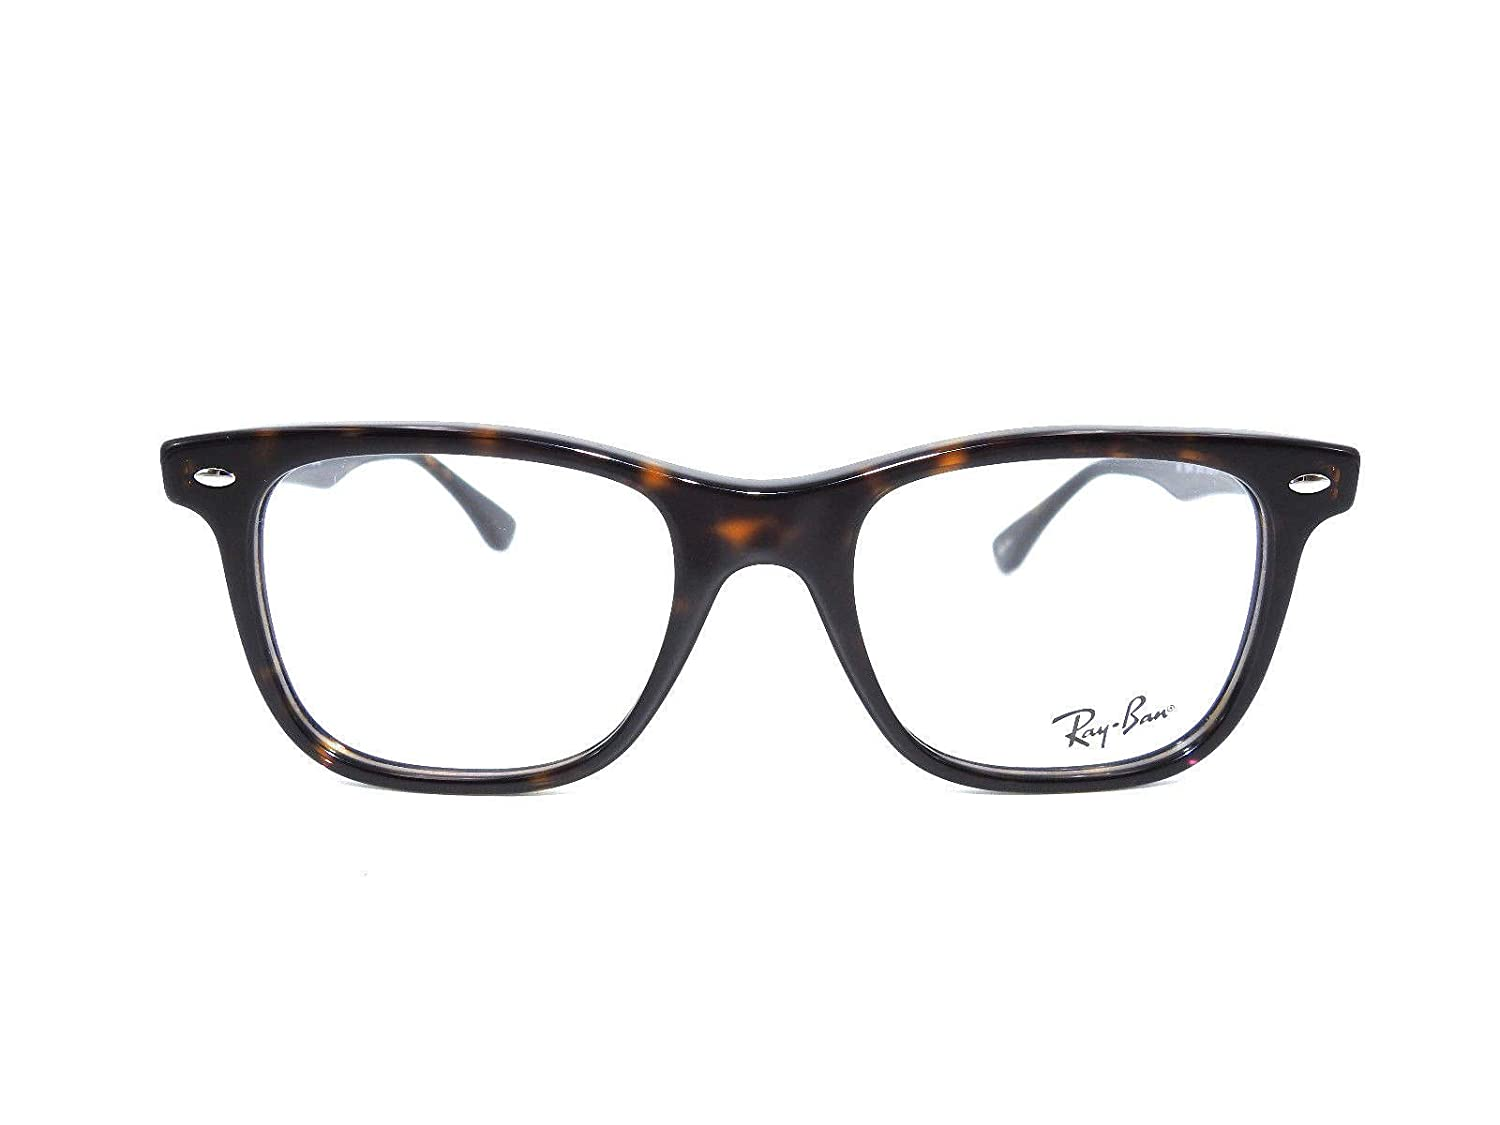 07da6f3a22 Amazon.com  Ray-Ban RX5248 Sunglasses